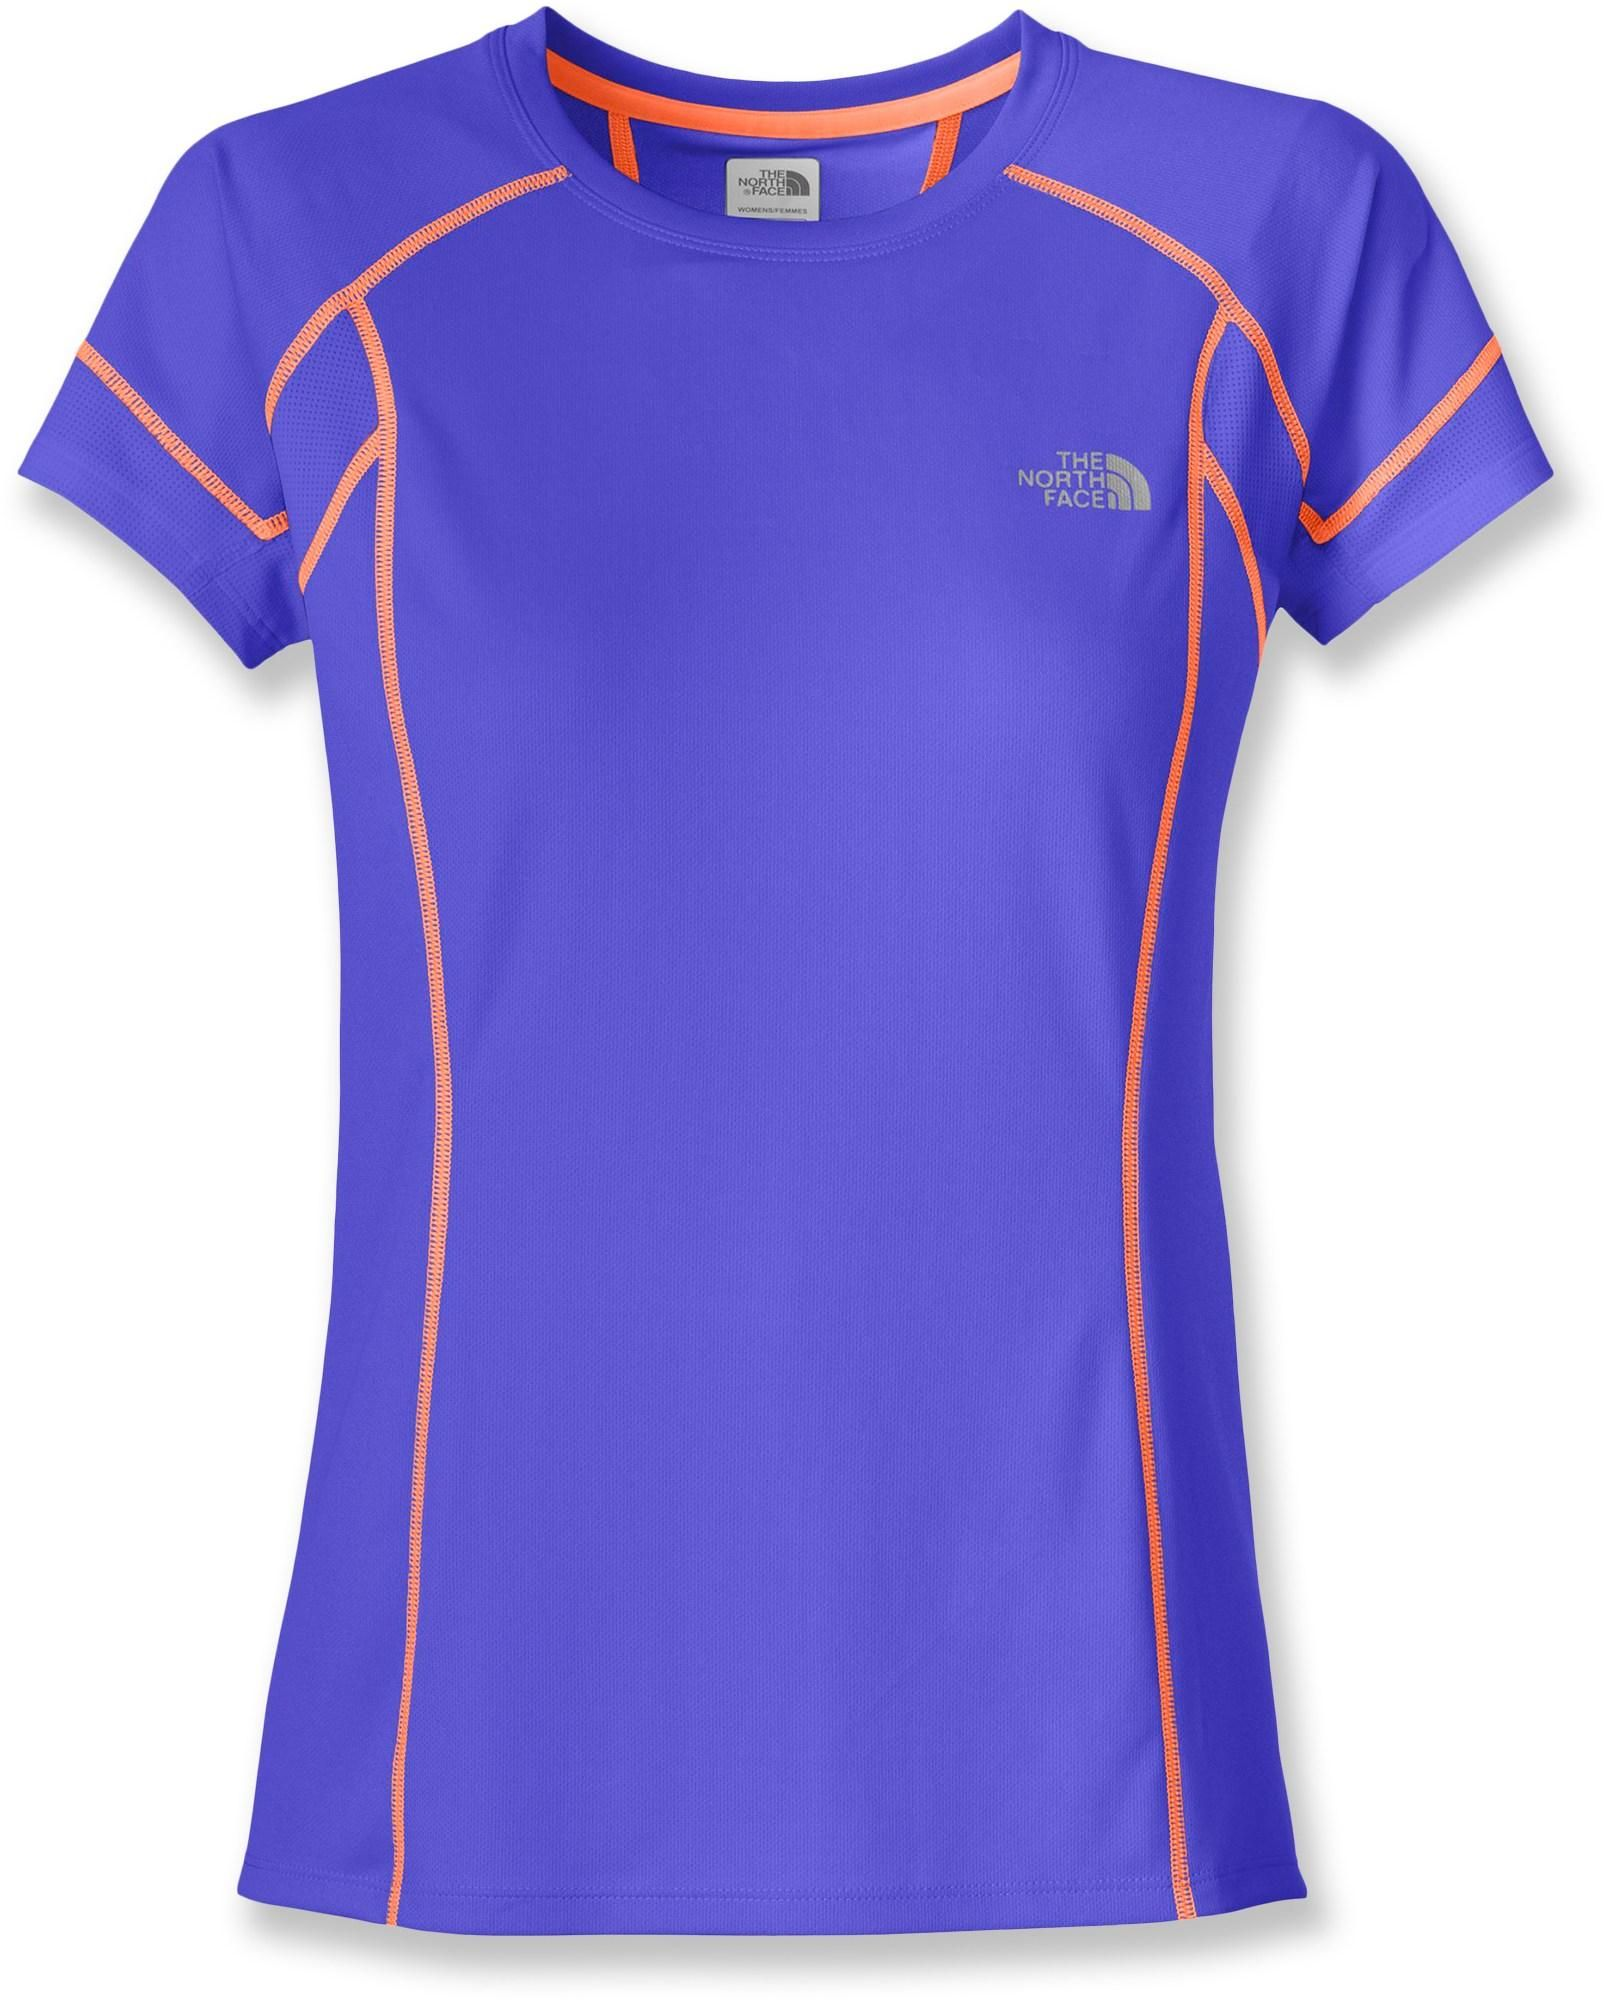 09054cbd5 At REI Outlet: The North Face GTD T-Shirt. | Go Exercise | Women's ...